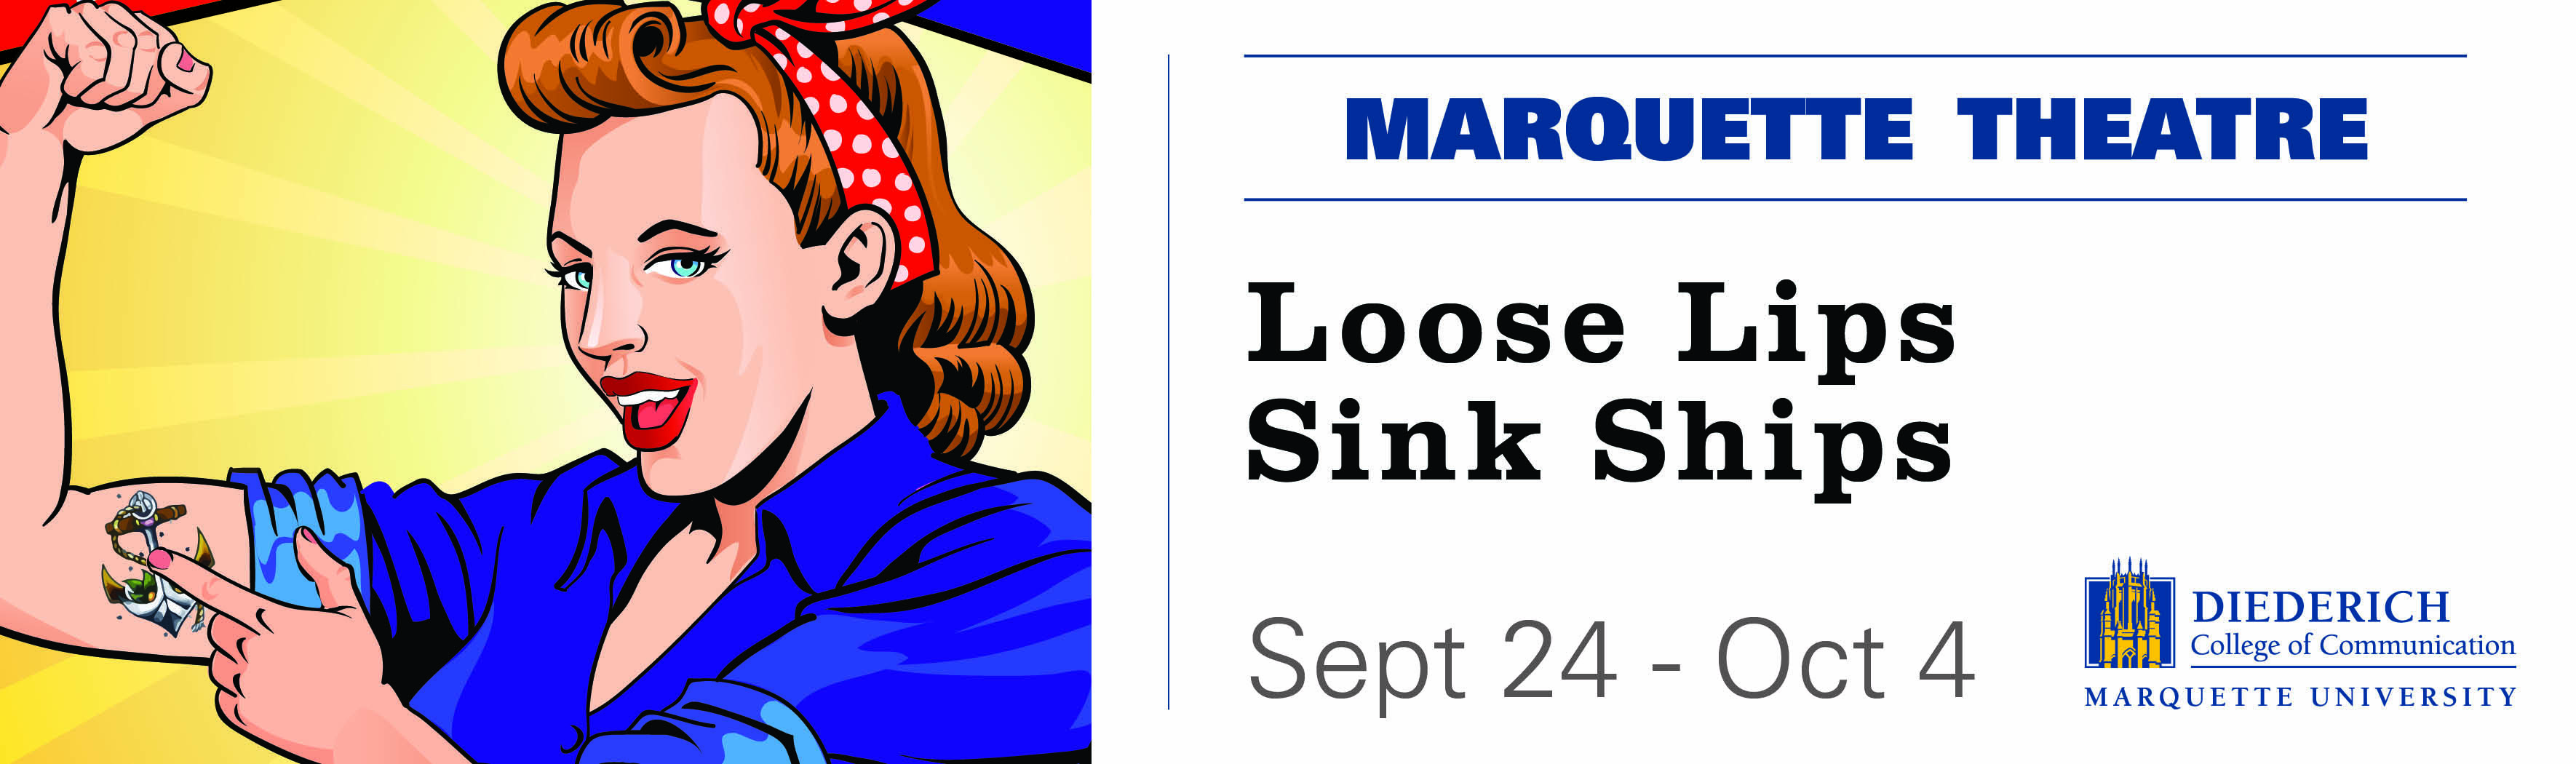 Tickets for Loose Lips Sink Ships in Milwaukee from ShowClix